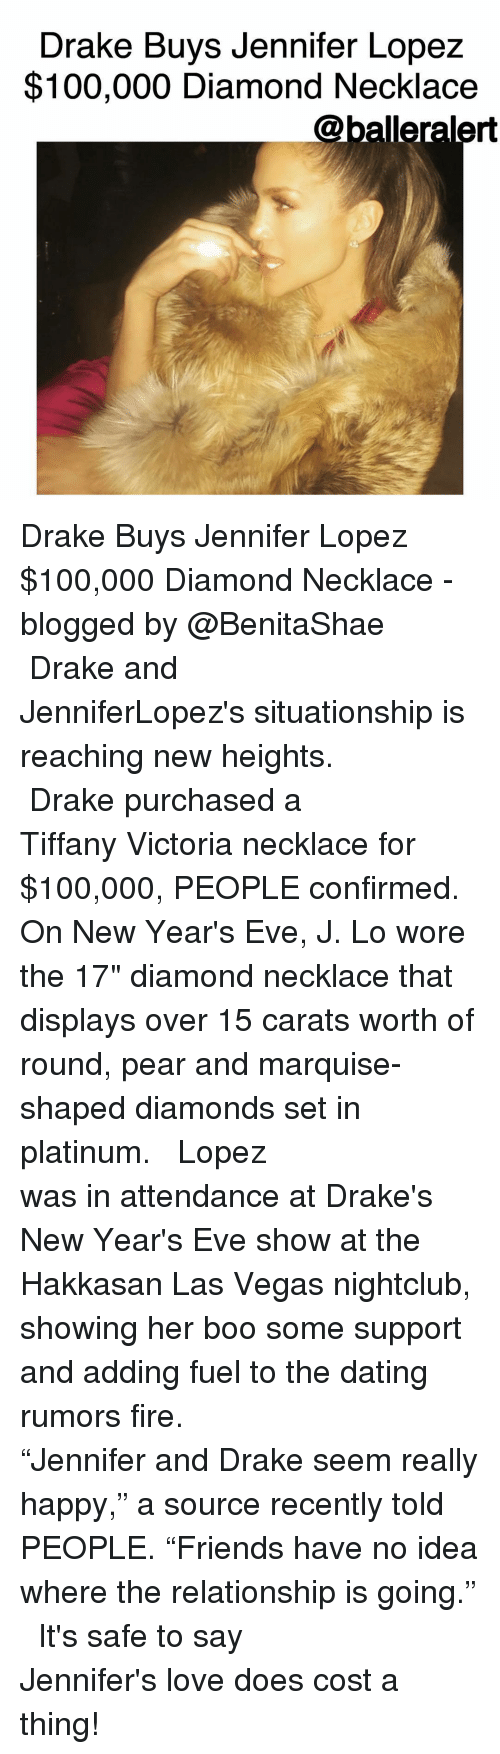 """Boo, Drake, and Jennifer Lopez: Drake Buys Jennifer Lopez  $100,000 Diamond Necklace  @balleralert Drake Buys Jennifer Lopez $100,000 Diamond Necklace -blogged by @BenitaShae ⠀⠀⠀⠀⠀⠀⠀⠀⠀ ⠀⠀⠀⠀⠀⠀⠀⠀⠀ Drake and JenniferLopez's situationship is reaching new heights. ⠀⠀⠀⠀⠀⠀⠀⠀⠀ ⠀⠀⠀⠀⠀⠀⠀⠀⠀ Drake purchased a Tiffany Victoria necklace for $100,000, PEOPLE confirmed. On New Year's Eve, J. Lo wore the 17"""" diamond necklace that displays over 15 carats worth of round, pear and marquise-shaped diamonds set in platinum. ⠀⠀⠀⠀⠀⠀⠀⠀⠀ ⠀⠀⠀⠀⠀⠀⠀⠀⠀ Lopez was in attendance at Drake's New Year's Eve show at the Hakkasan Las Vegas nightclub, showing her boo some support and adding fuel to the dating rumors fire. ⠀⠀⠀⠀⠀⠀⠀⠀⠀ ⠀⠀⠀⠀⠀⠀⠀⠀⠀ """"Jennifer and Drake seem really happy,"""" a source recently told PEOPLE. """"Friends have no idea where the relationship is going."""" ⠀⠀⠀⠀⠀⠀⠀⠀⠀ ⠀⠀⠀⠀⠀⠀⠀⠀⠀ It's safe to say Jennifer's love does cost a thing!"""